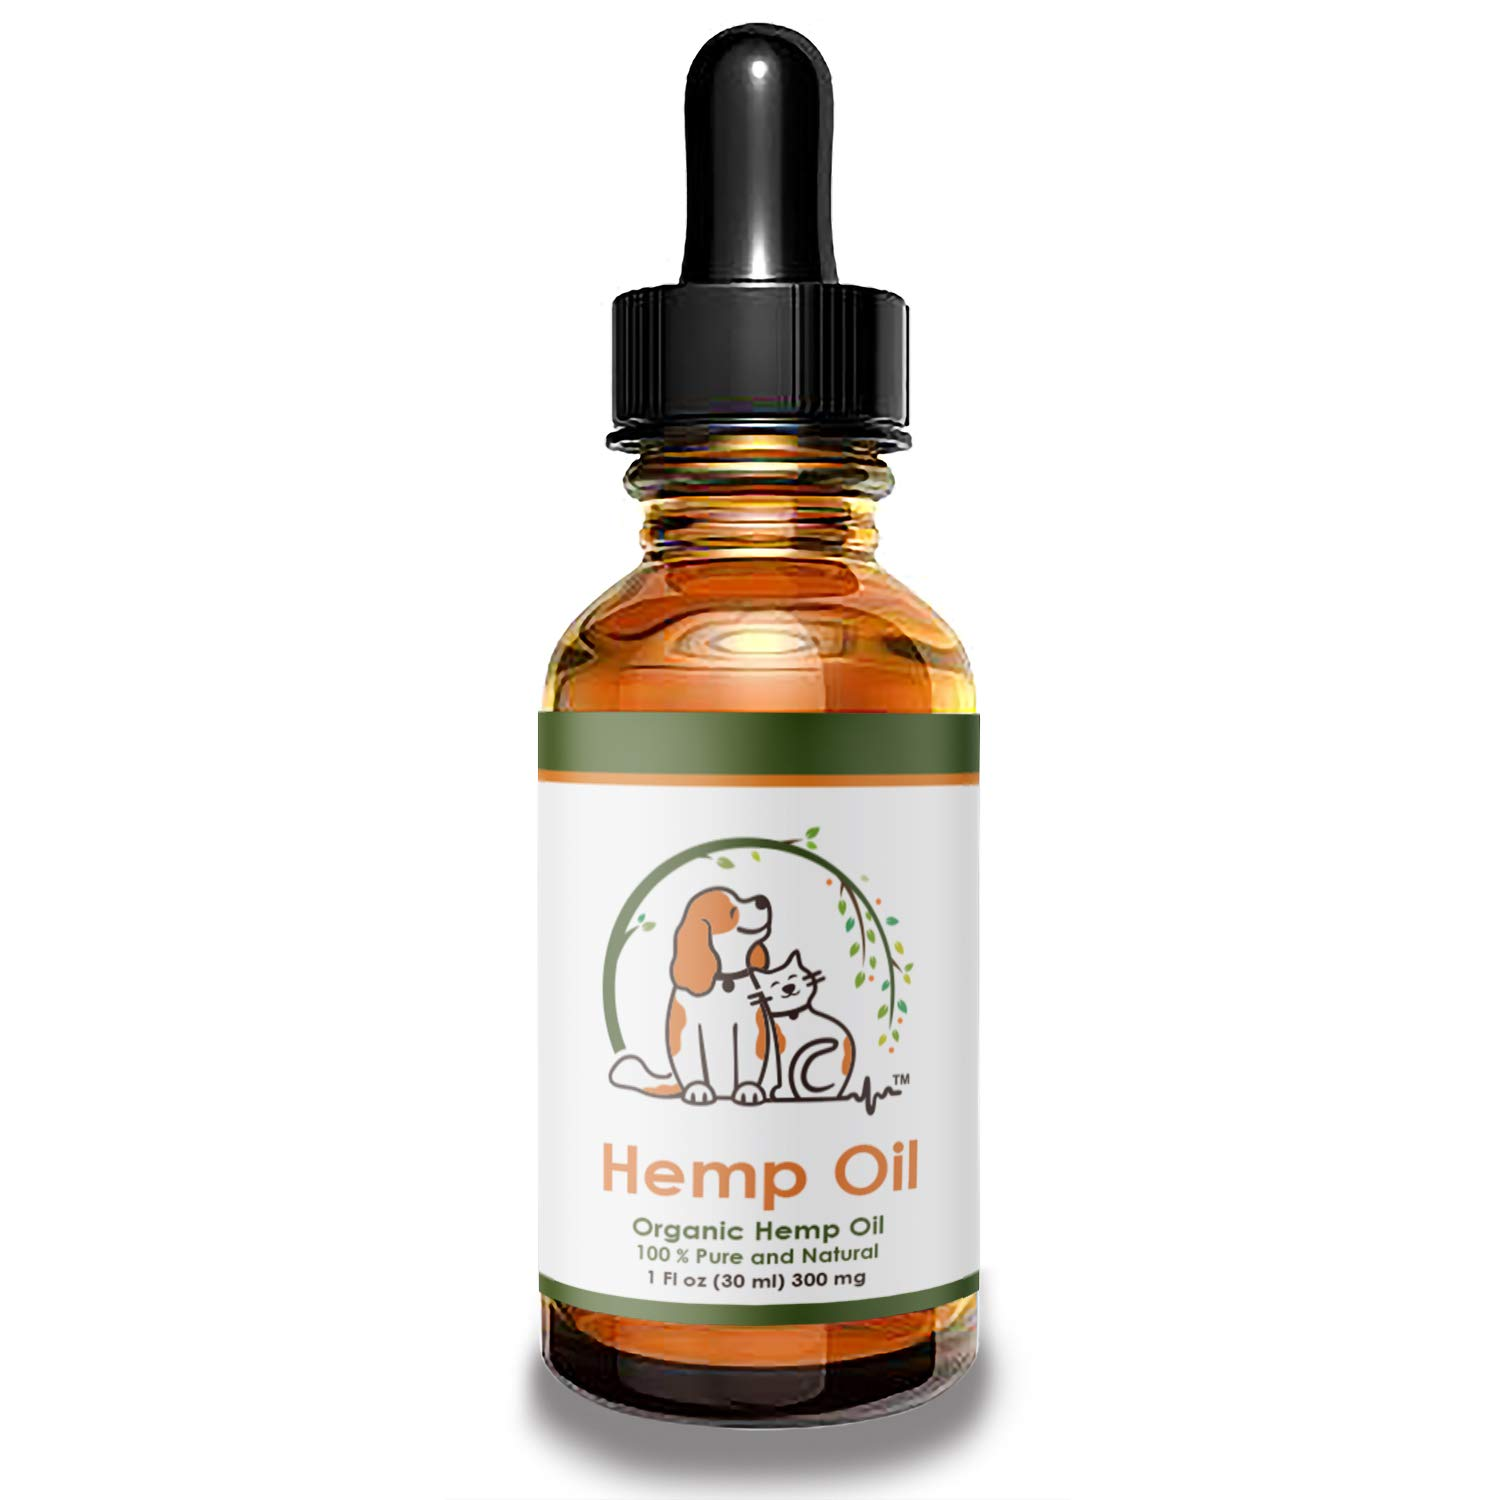 Valerio Pet Hemp Oil for Dogs and Cats, Dog Anxiety Relief, Hemp Oil Anxiety Relief for Pets, Dog Pain Relief, Oil for Dogs, Cat Anxiety Relief, Arthritis Pain, Hip Joint Pain, USDA Certified Organic by Valerio